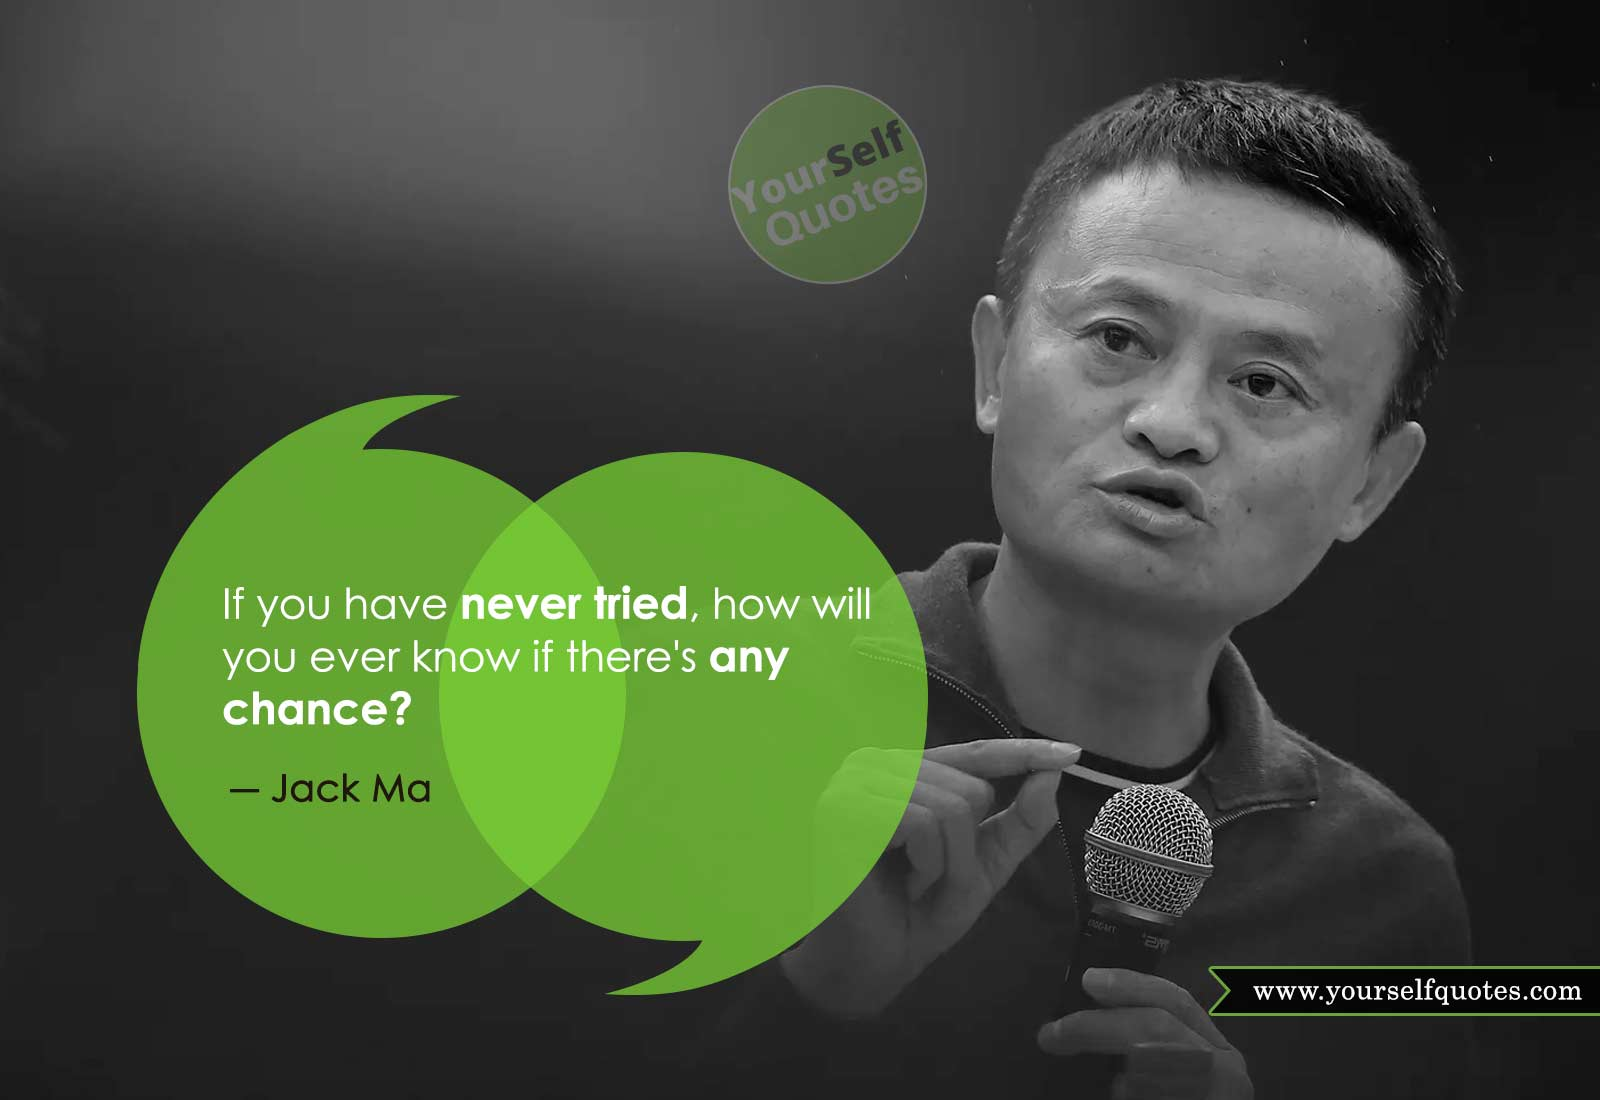 Quotes By Alibaba's Jack Ma